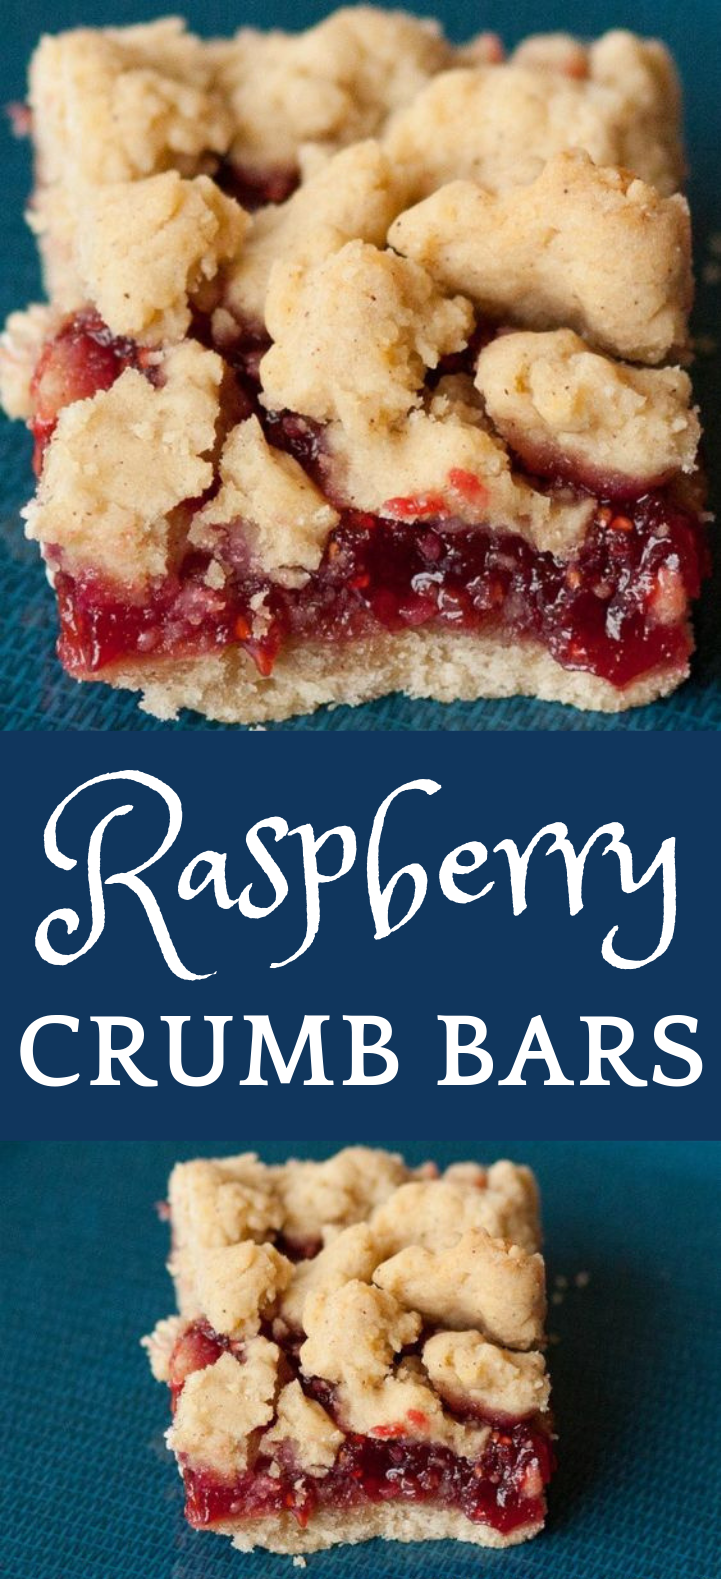 Raspberry Crumb Bars #Raspberry #Dessert